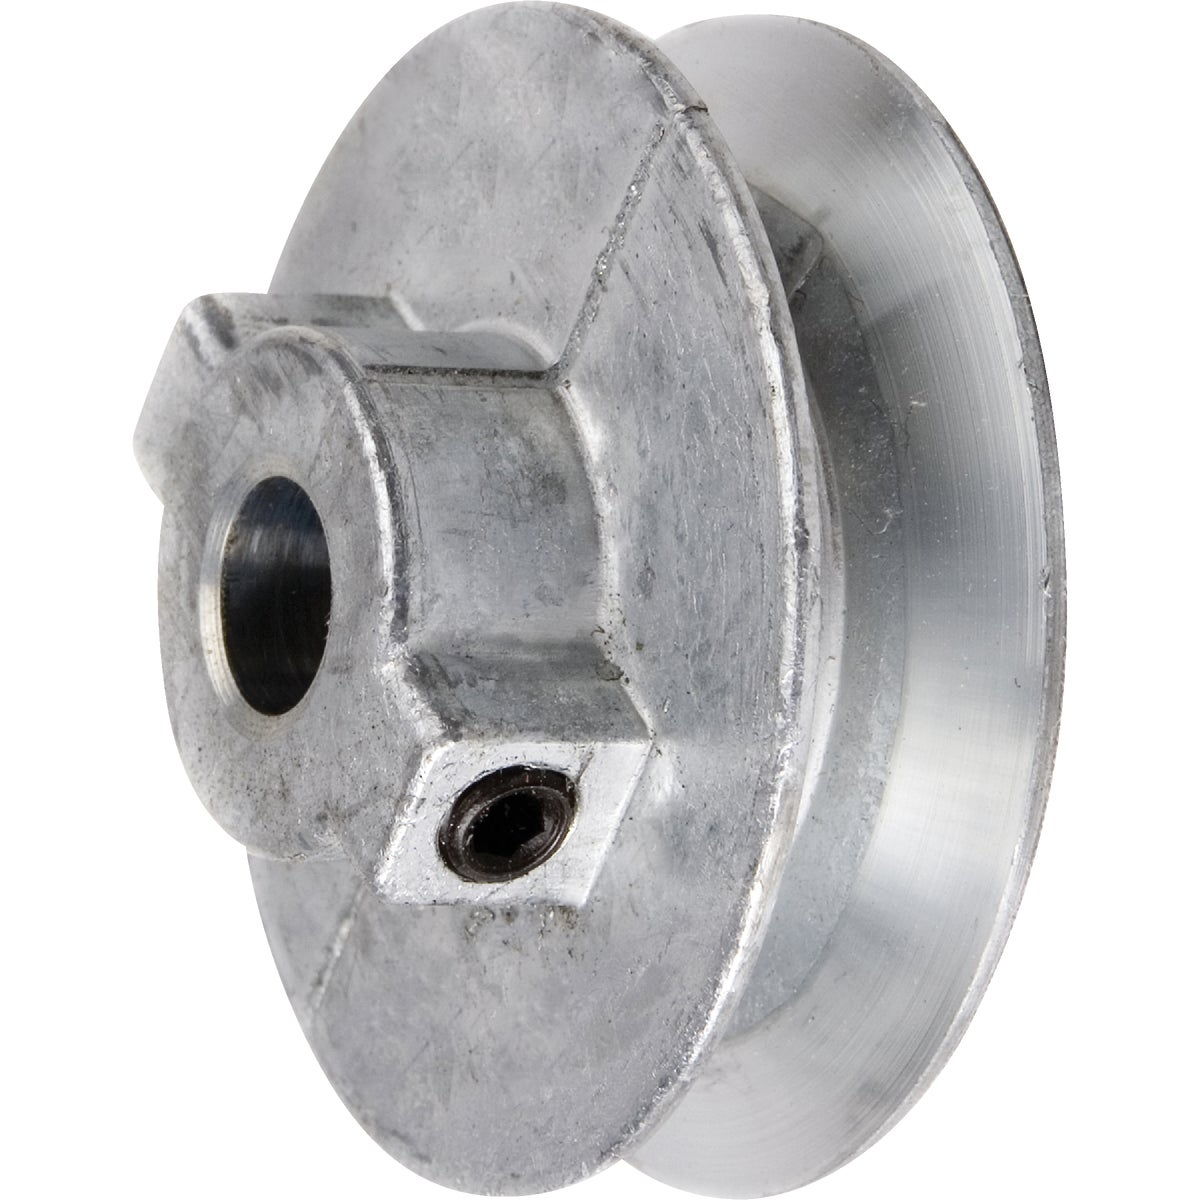 2-3/4X5/8 PULLEY - 275A6 by Chicago Die Casting